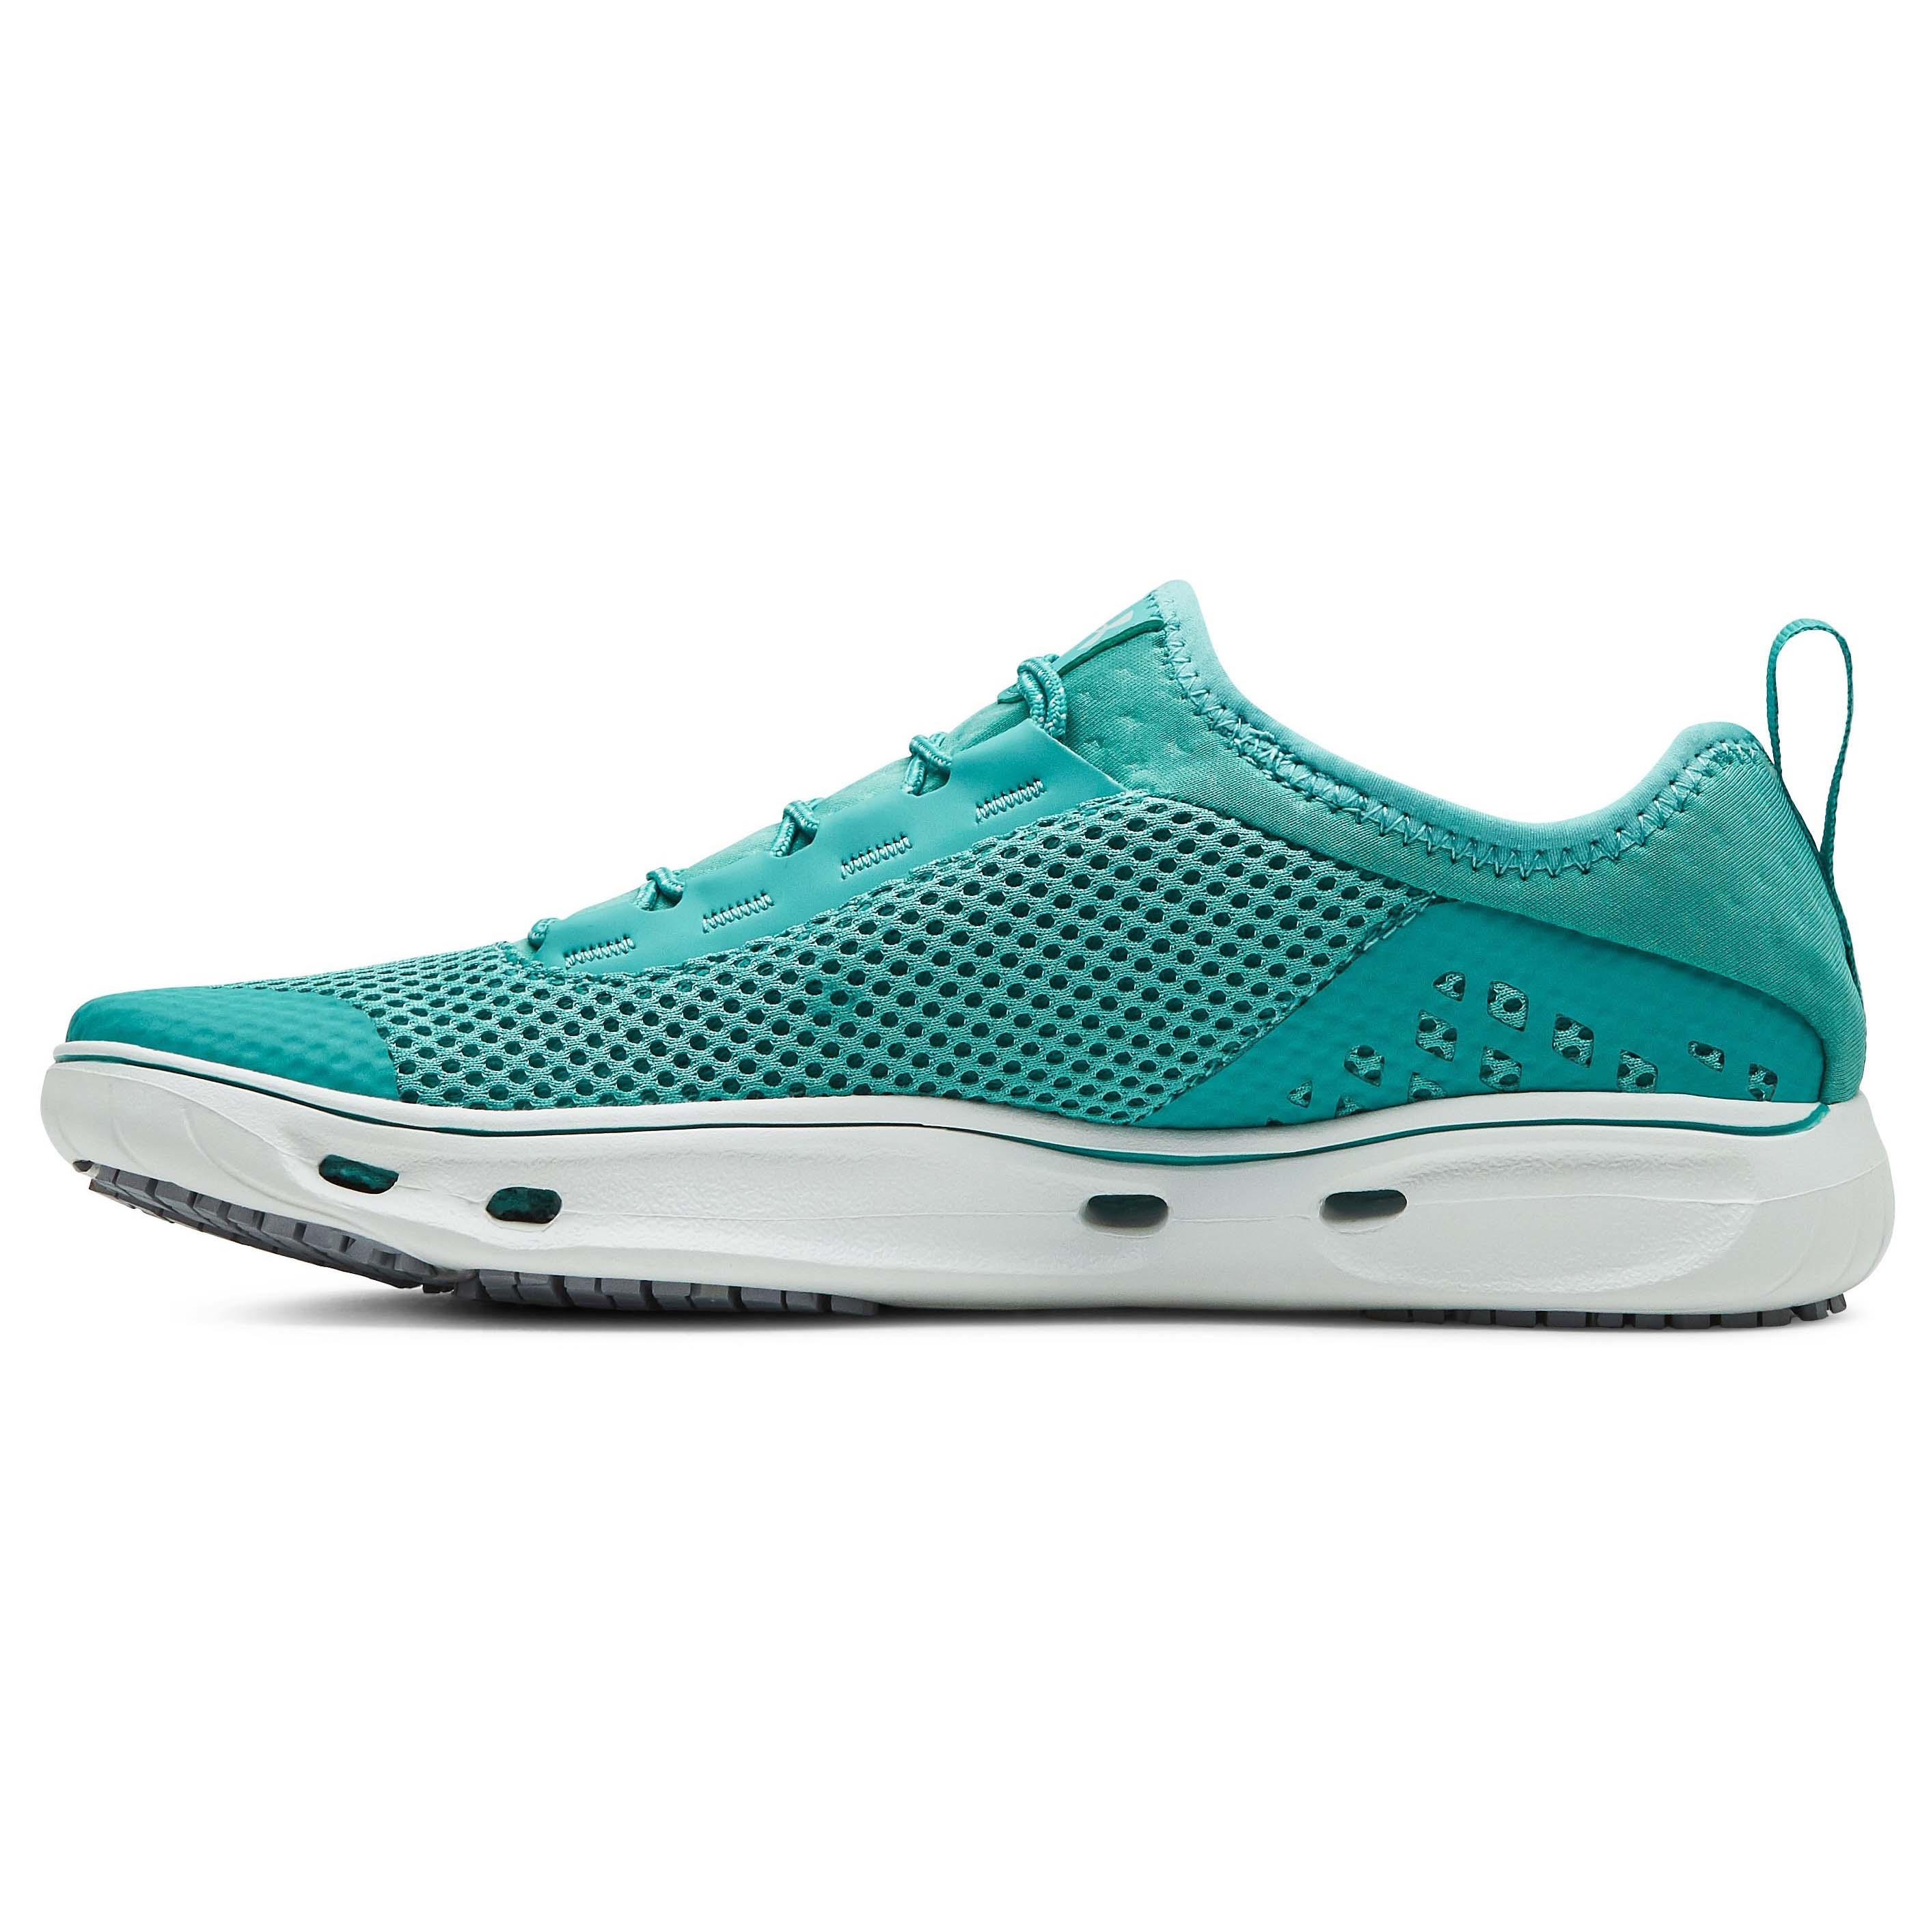 6cd67ba2a9b Murdoch's – Under Armour - Women's UA Kilchis Shoe